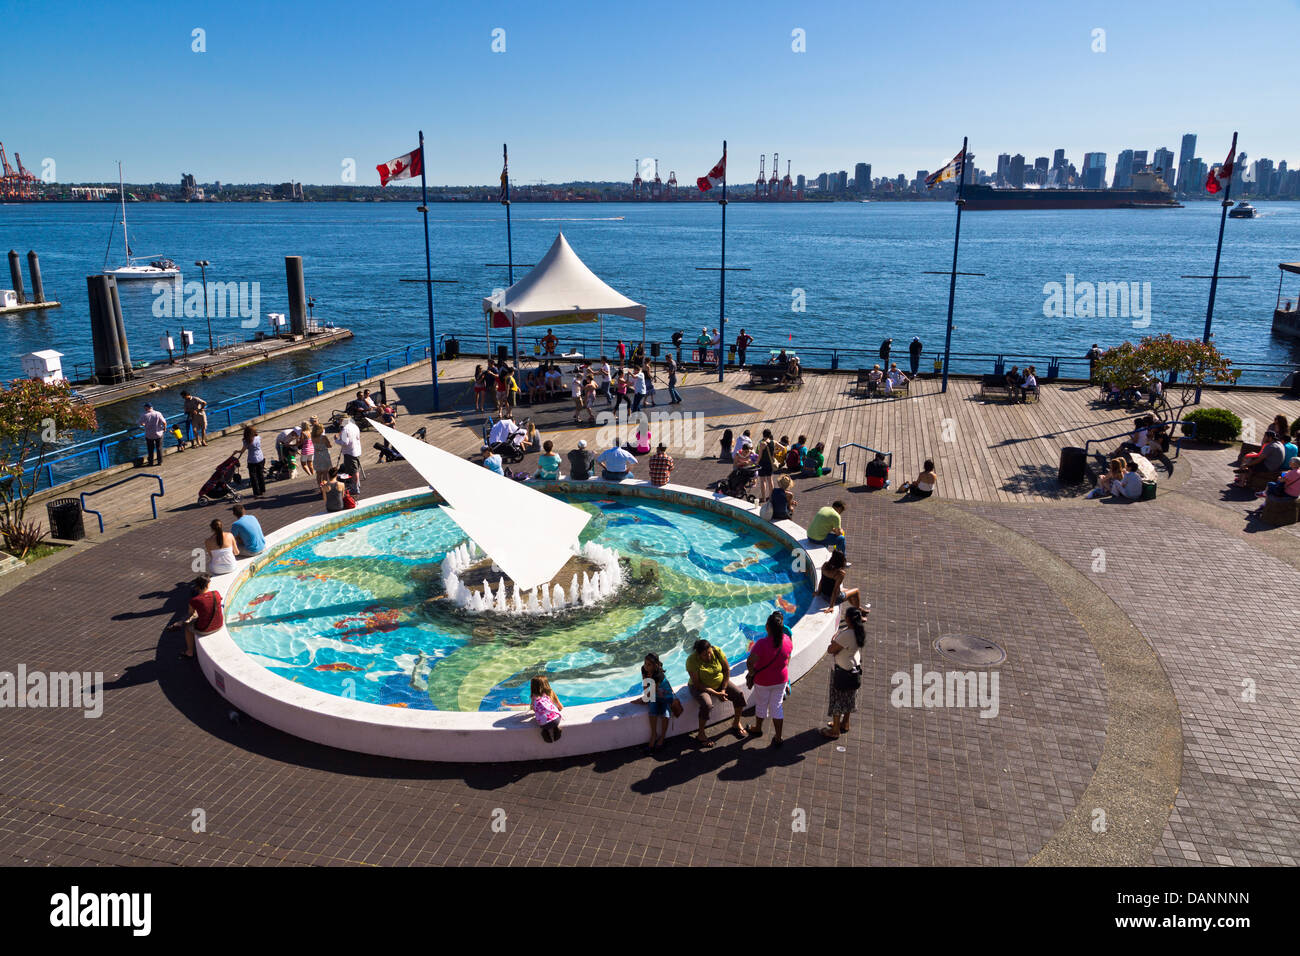 Lonsdale Quay Waterfront, North Vancouver, British Columbia, Canadá. Imagen De Stock